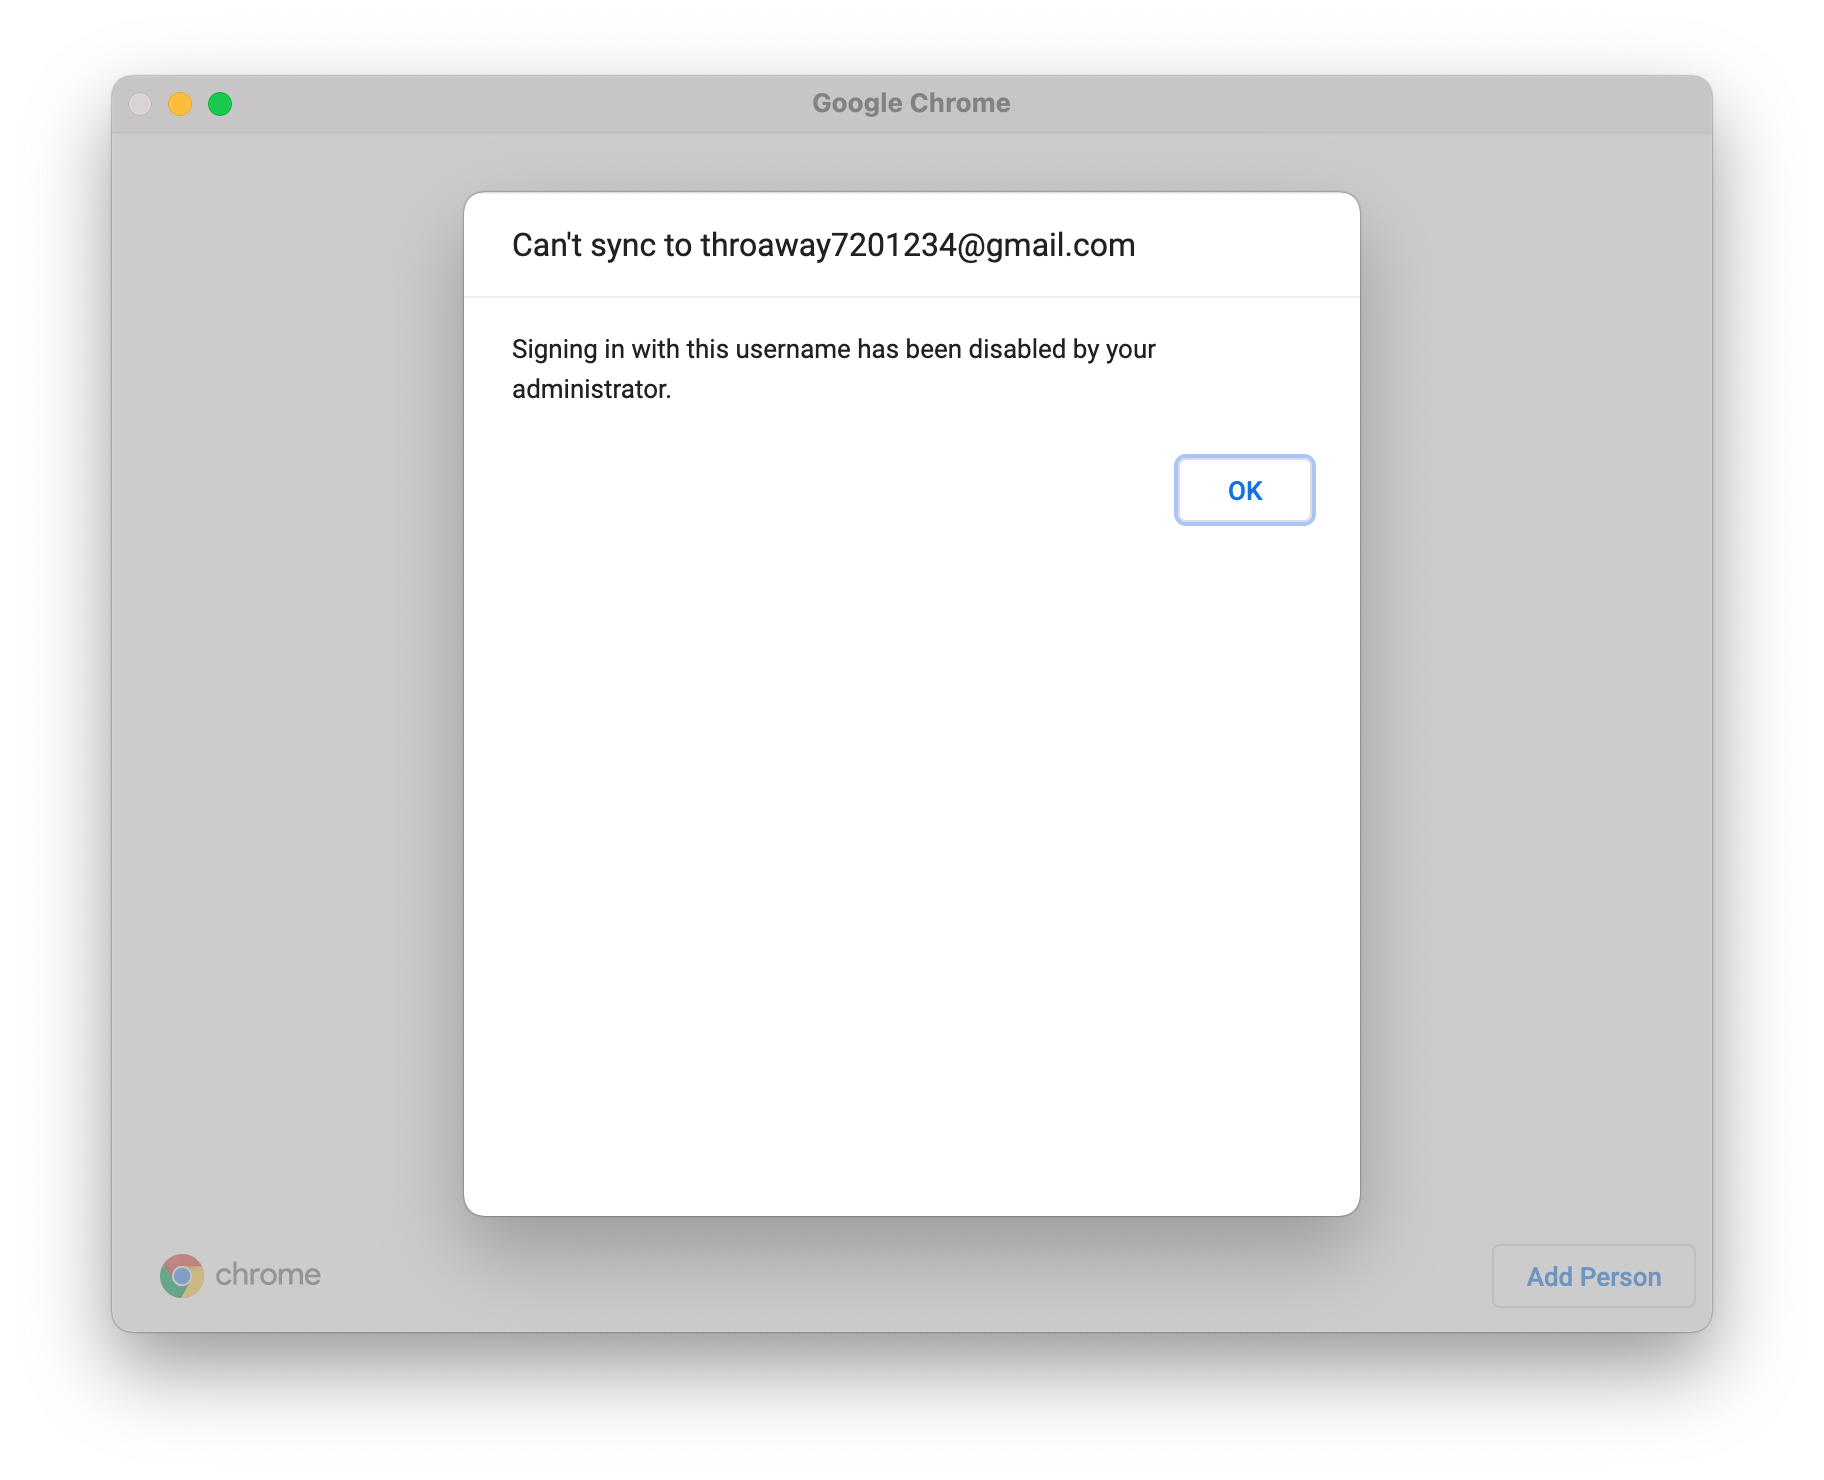 Chrome can't sign in